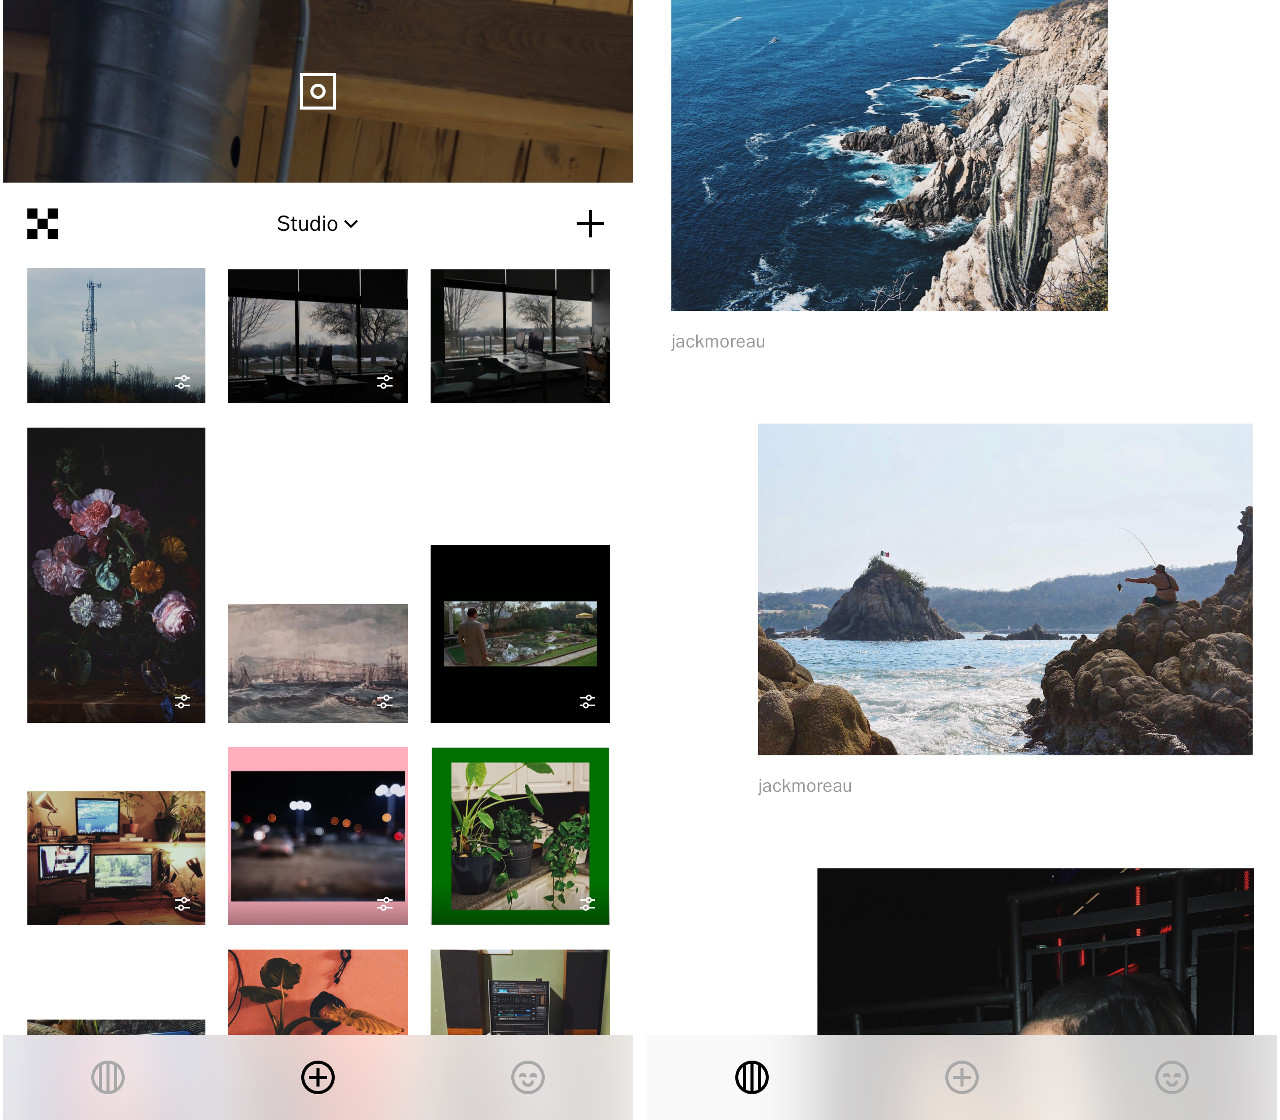 A screen shot of the VSCO studio screen and photo feed.